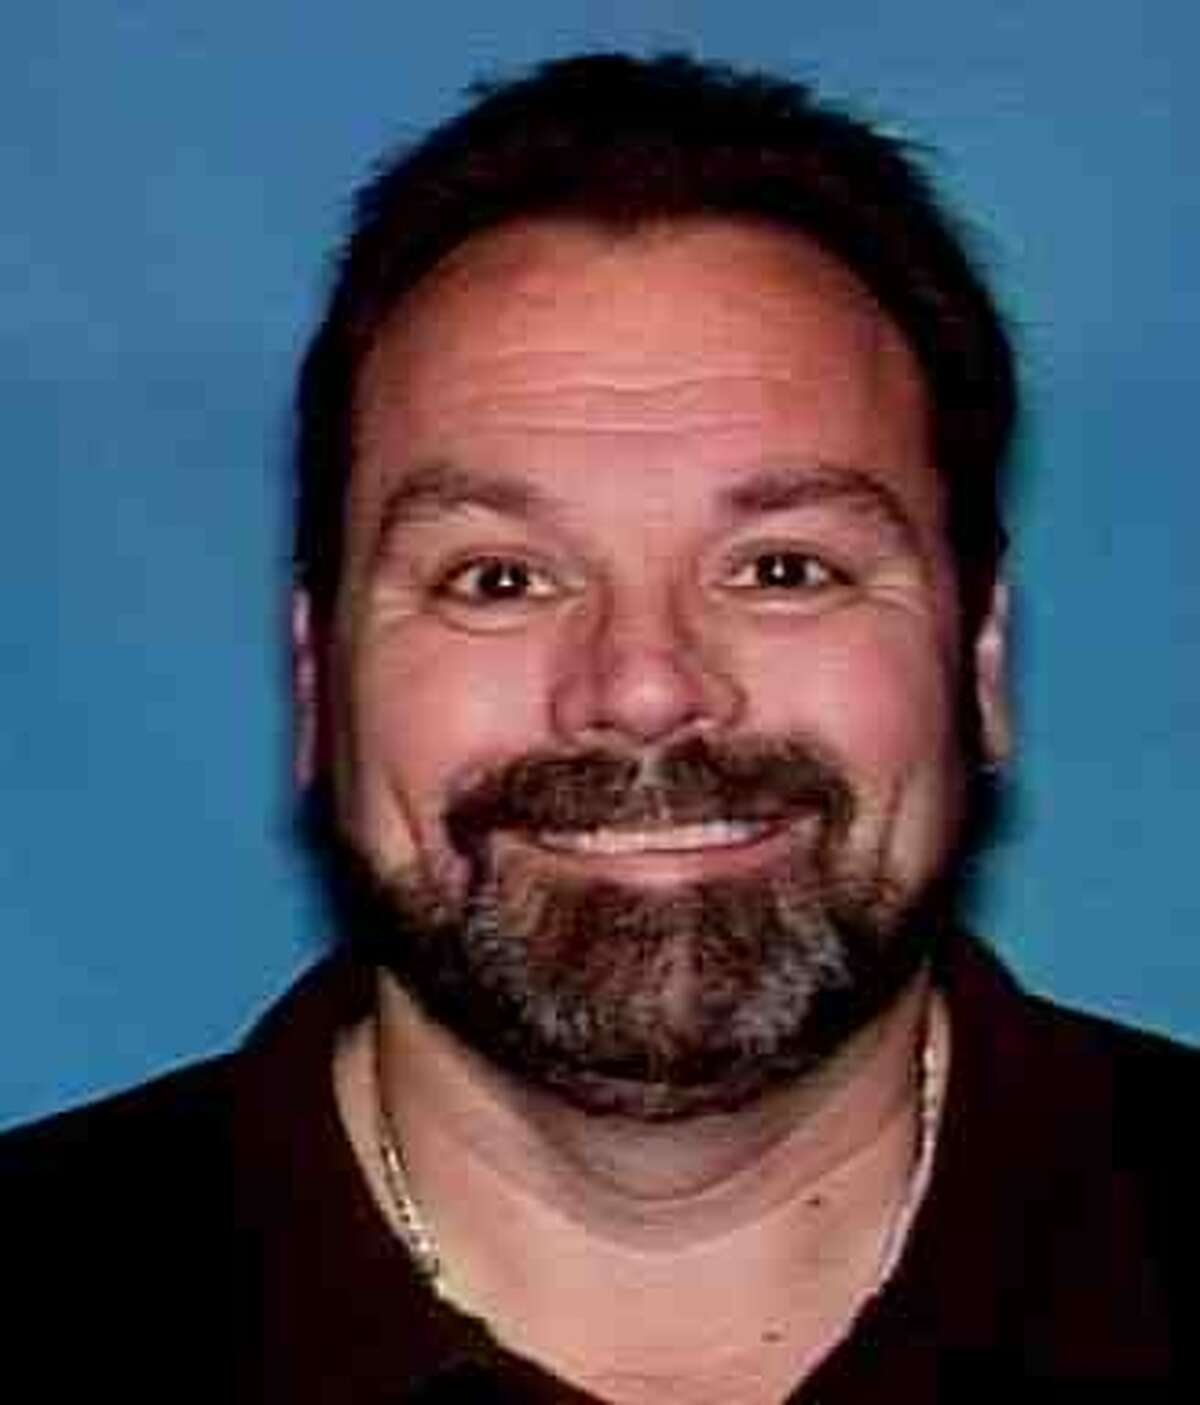 John Reed Webb Wanted for: Theft, $1,500-$20,000 Reward: $5,000 Contact San Antonio Crime Stoppers with information on the whereabouts of this suspect at 224-STOP (224-7867).